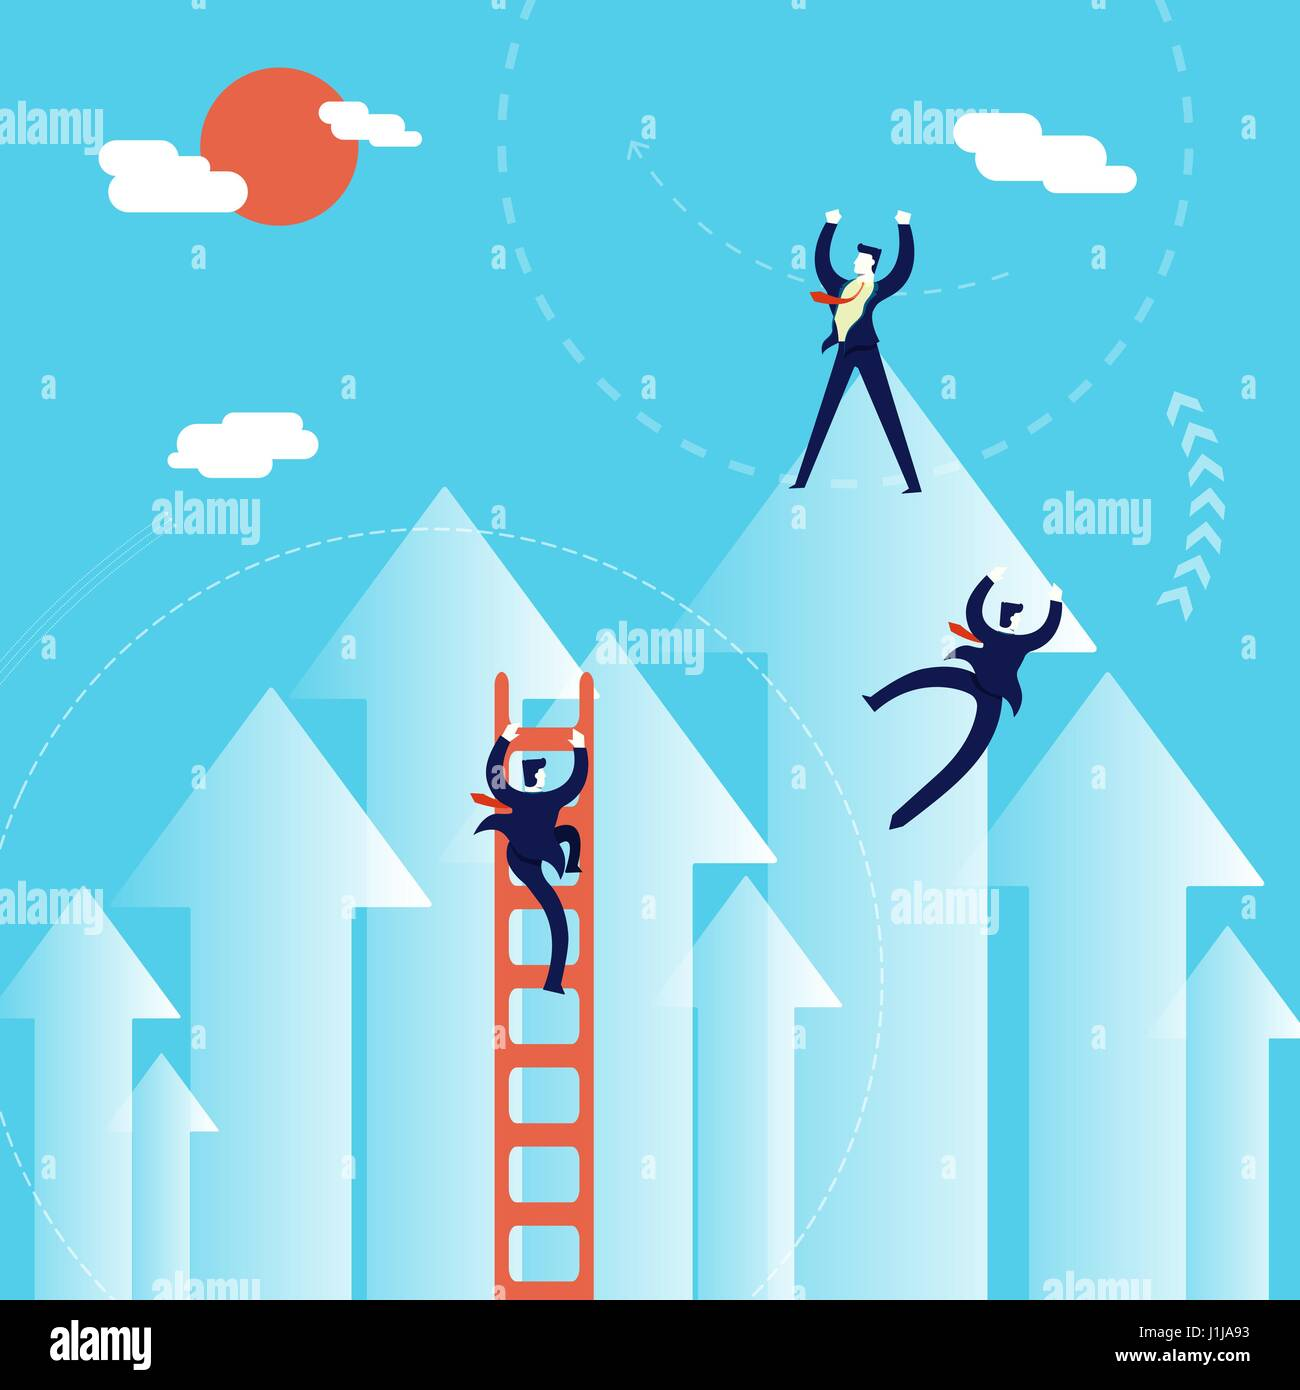 Business growth concept illustration, businessmen team climbing positive direction to success. EPS10 vector. - Stock Image